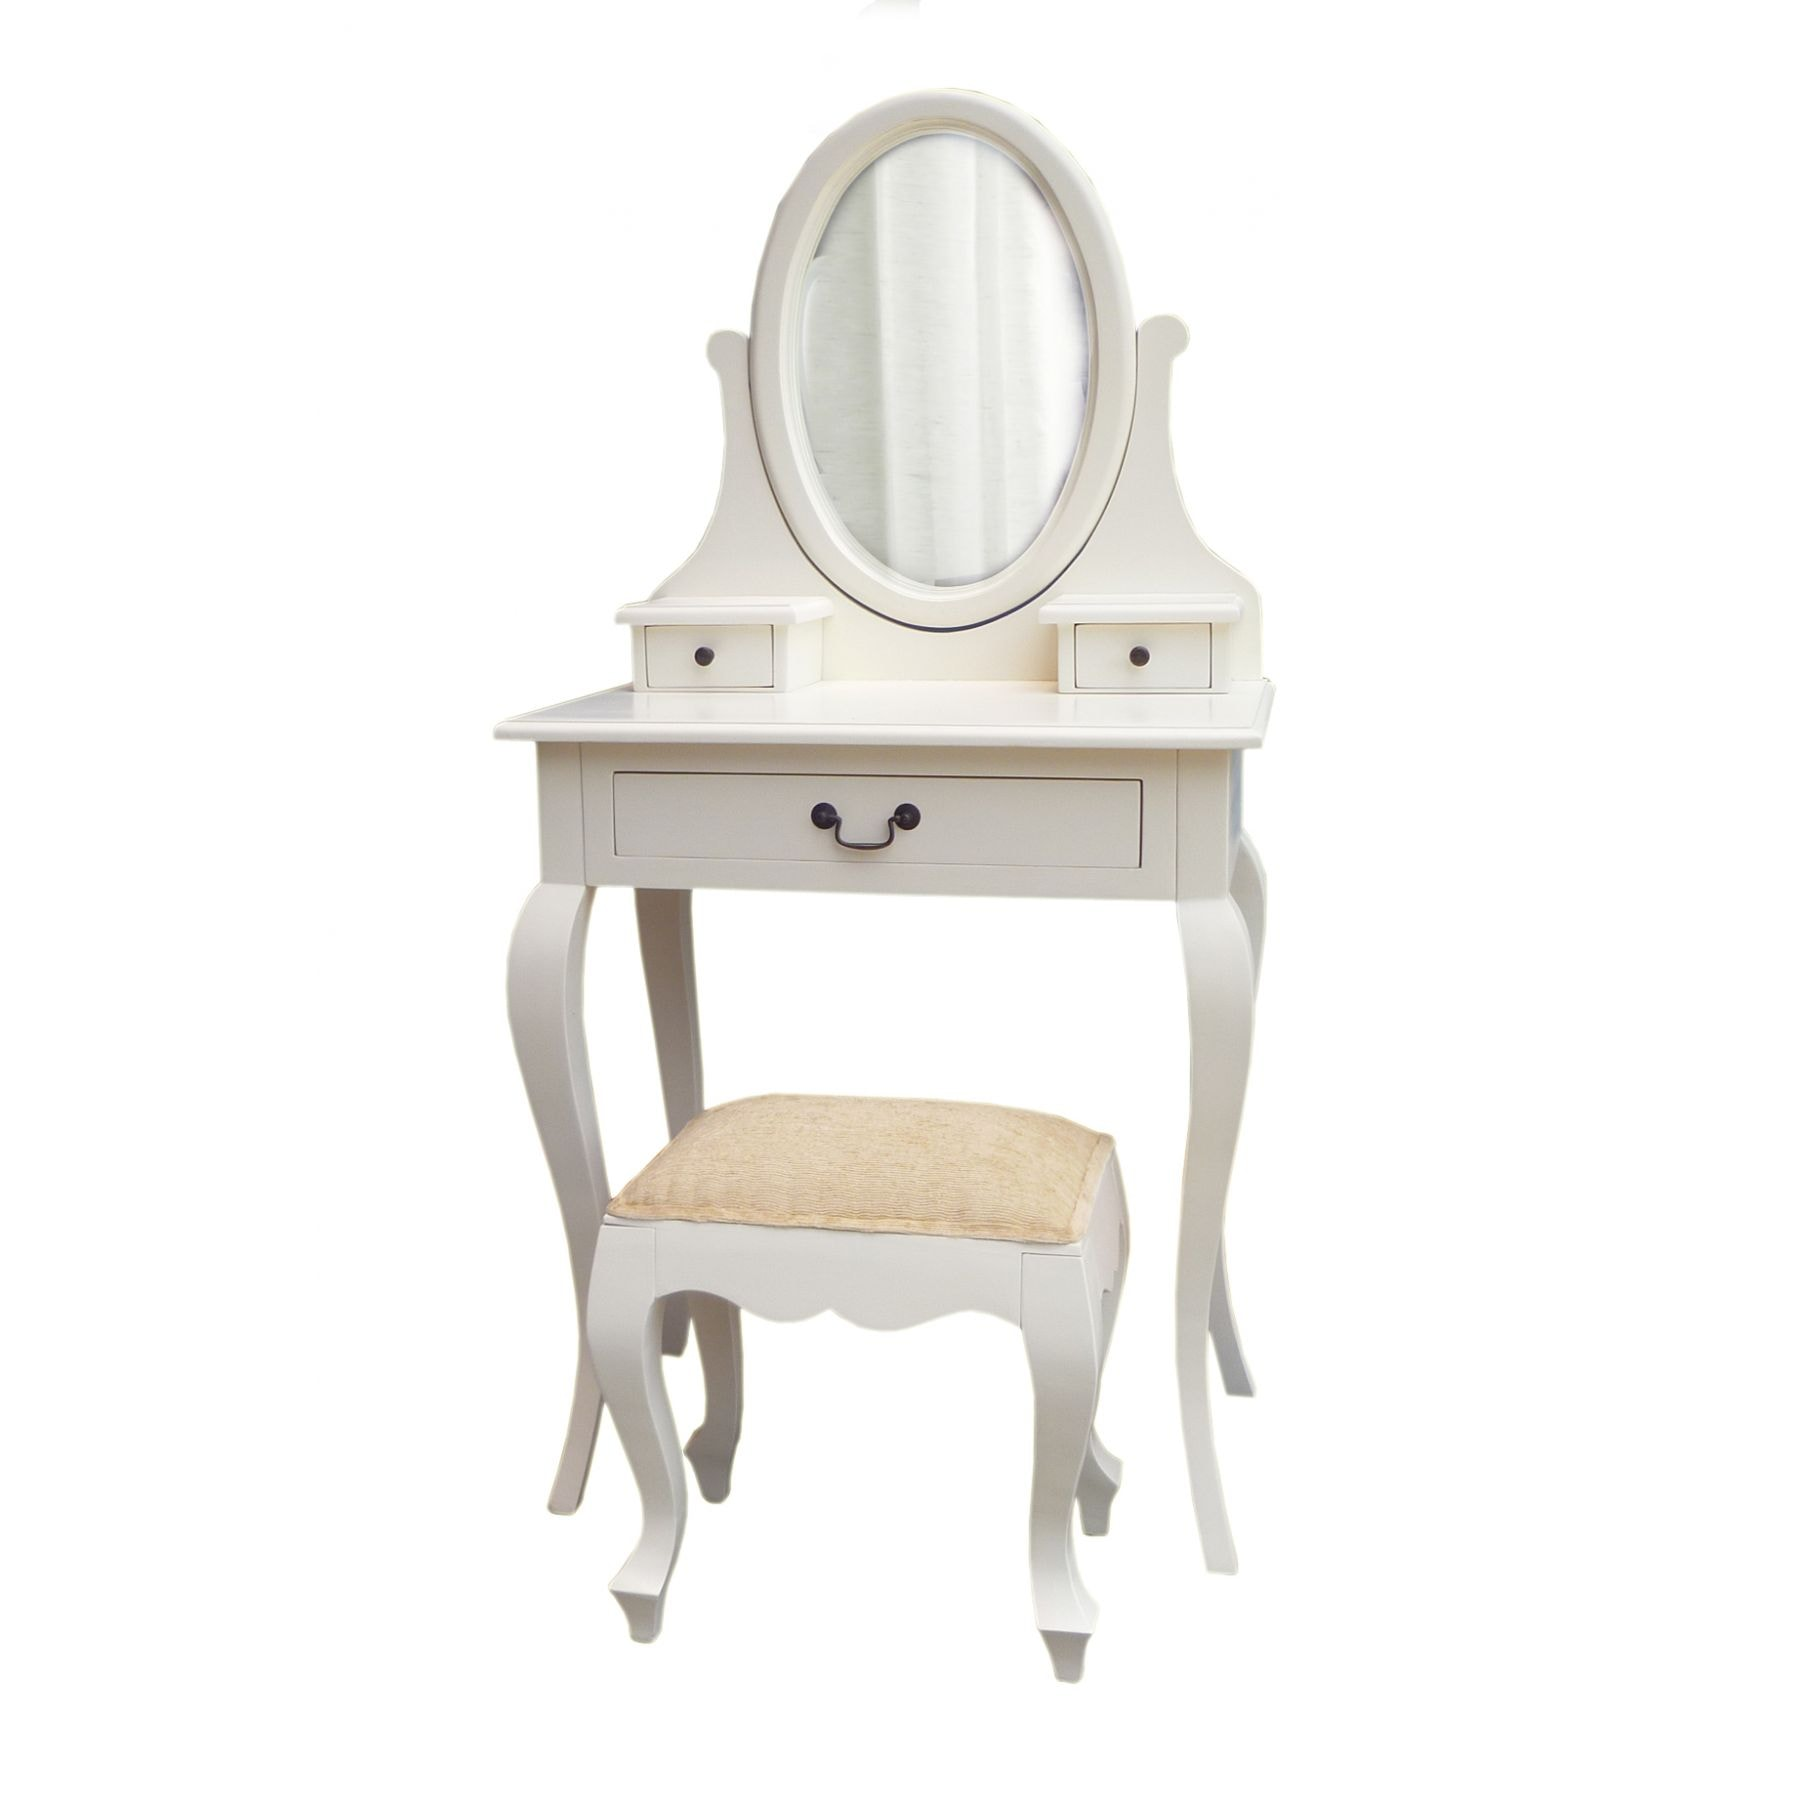 antique french white dressing table set 13428 | antique french dressing p23294 13428 zoom